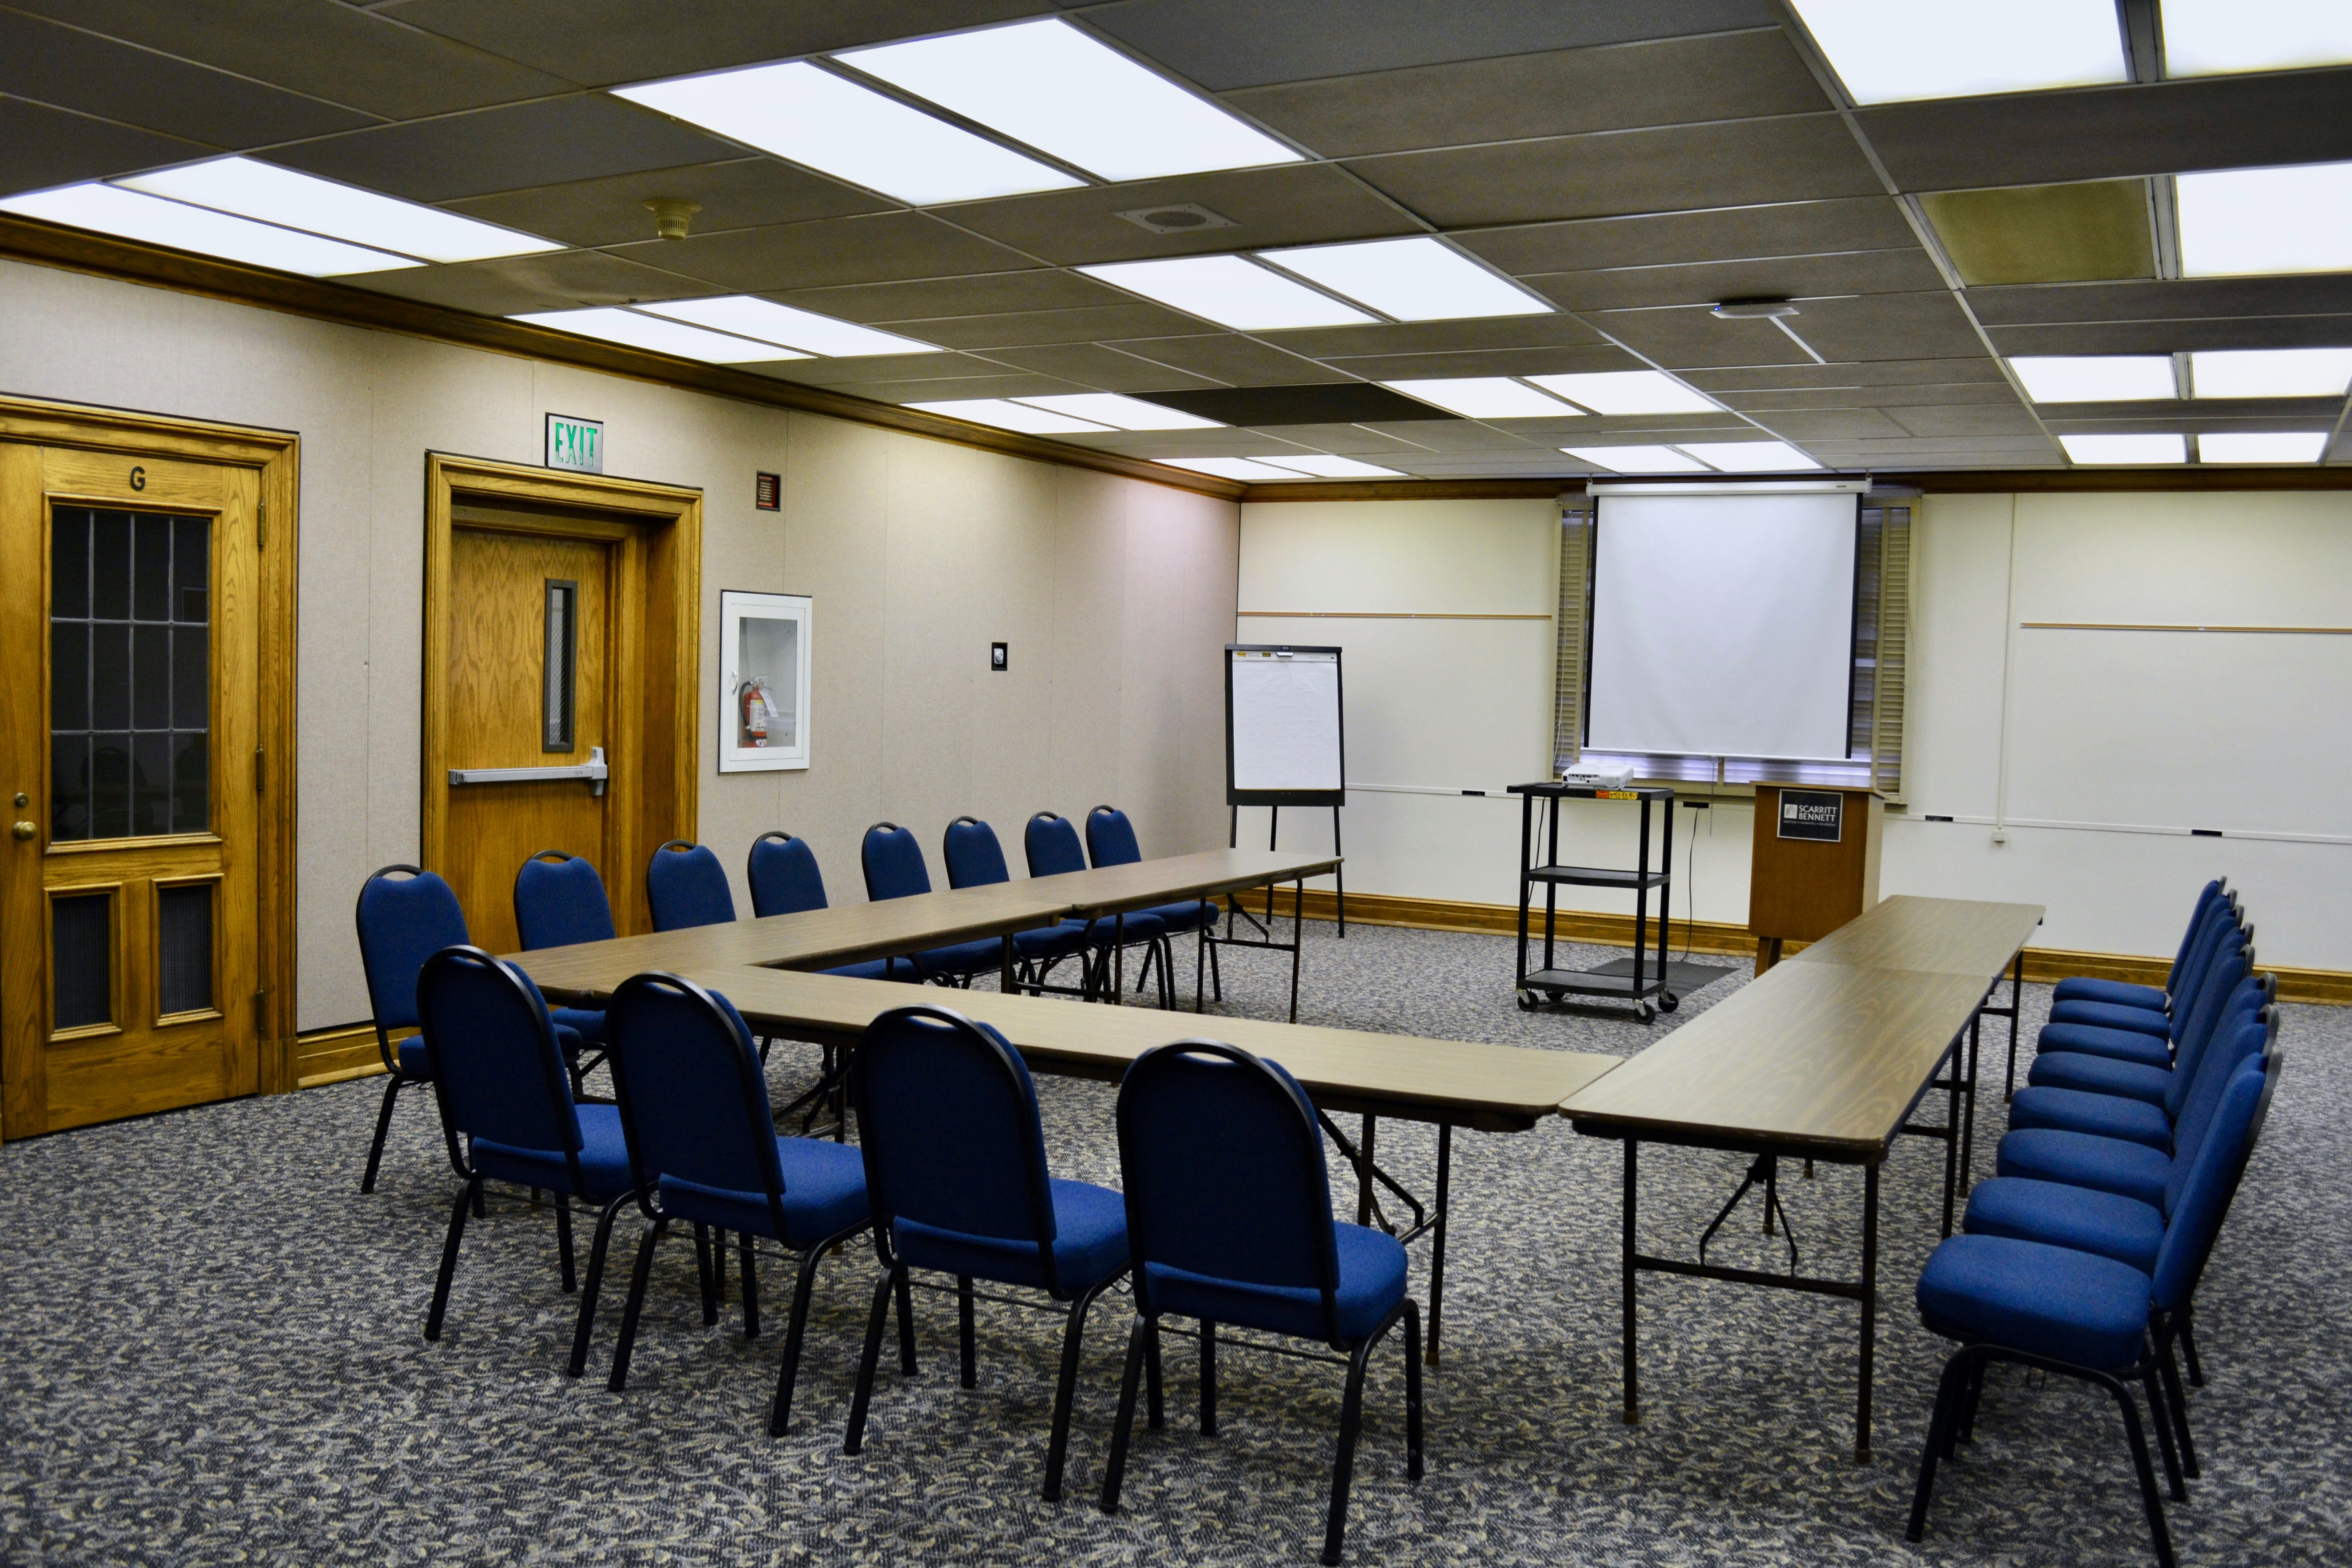 Medium sized room with tables and chairs in u-shape